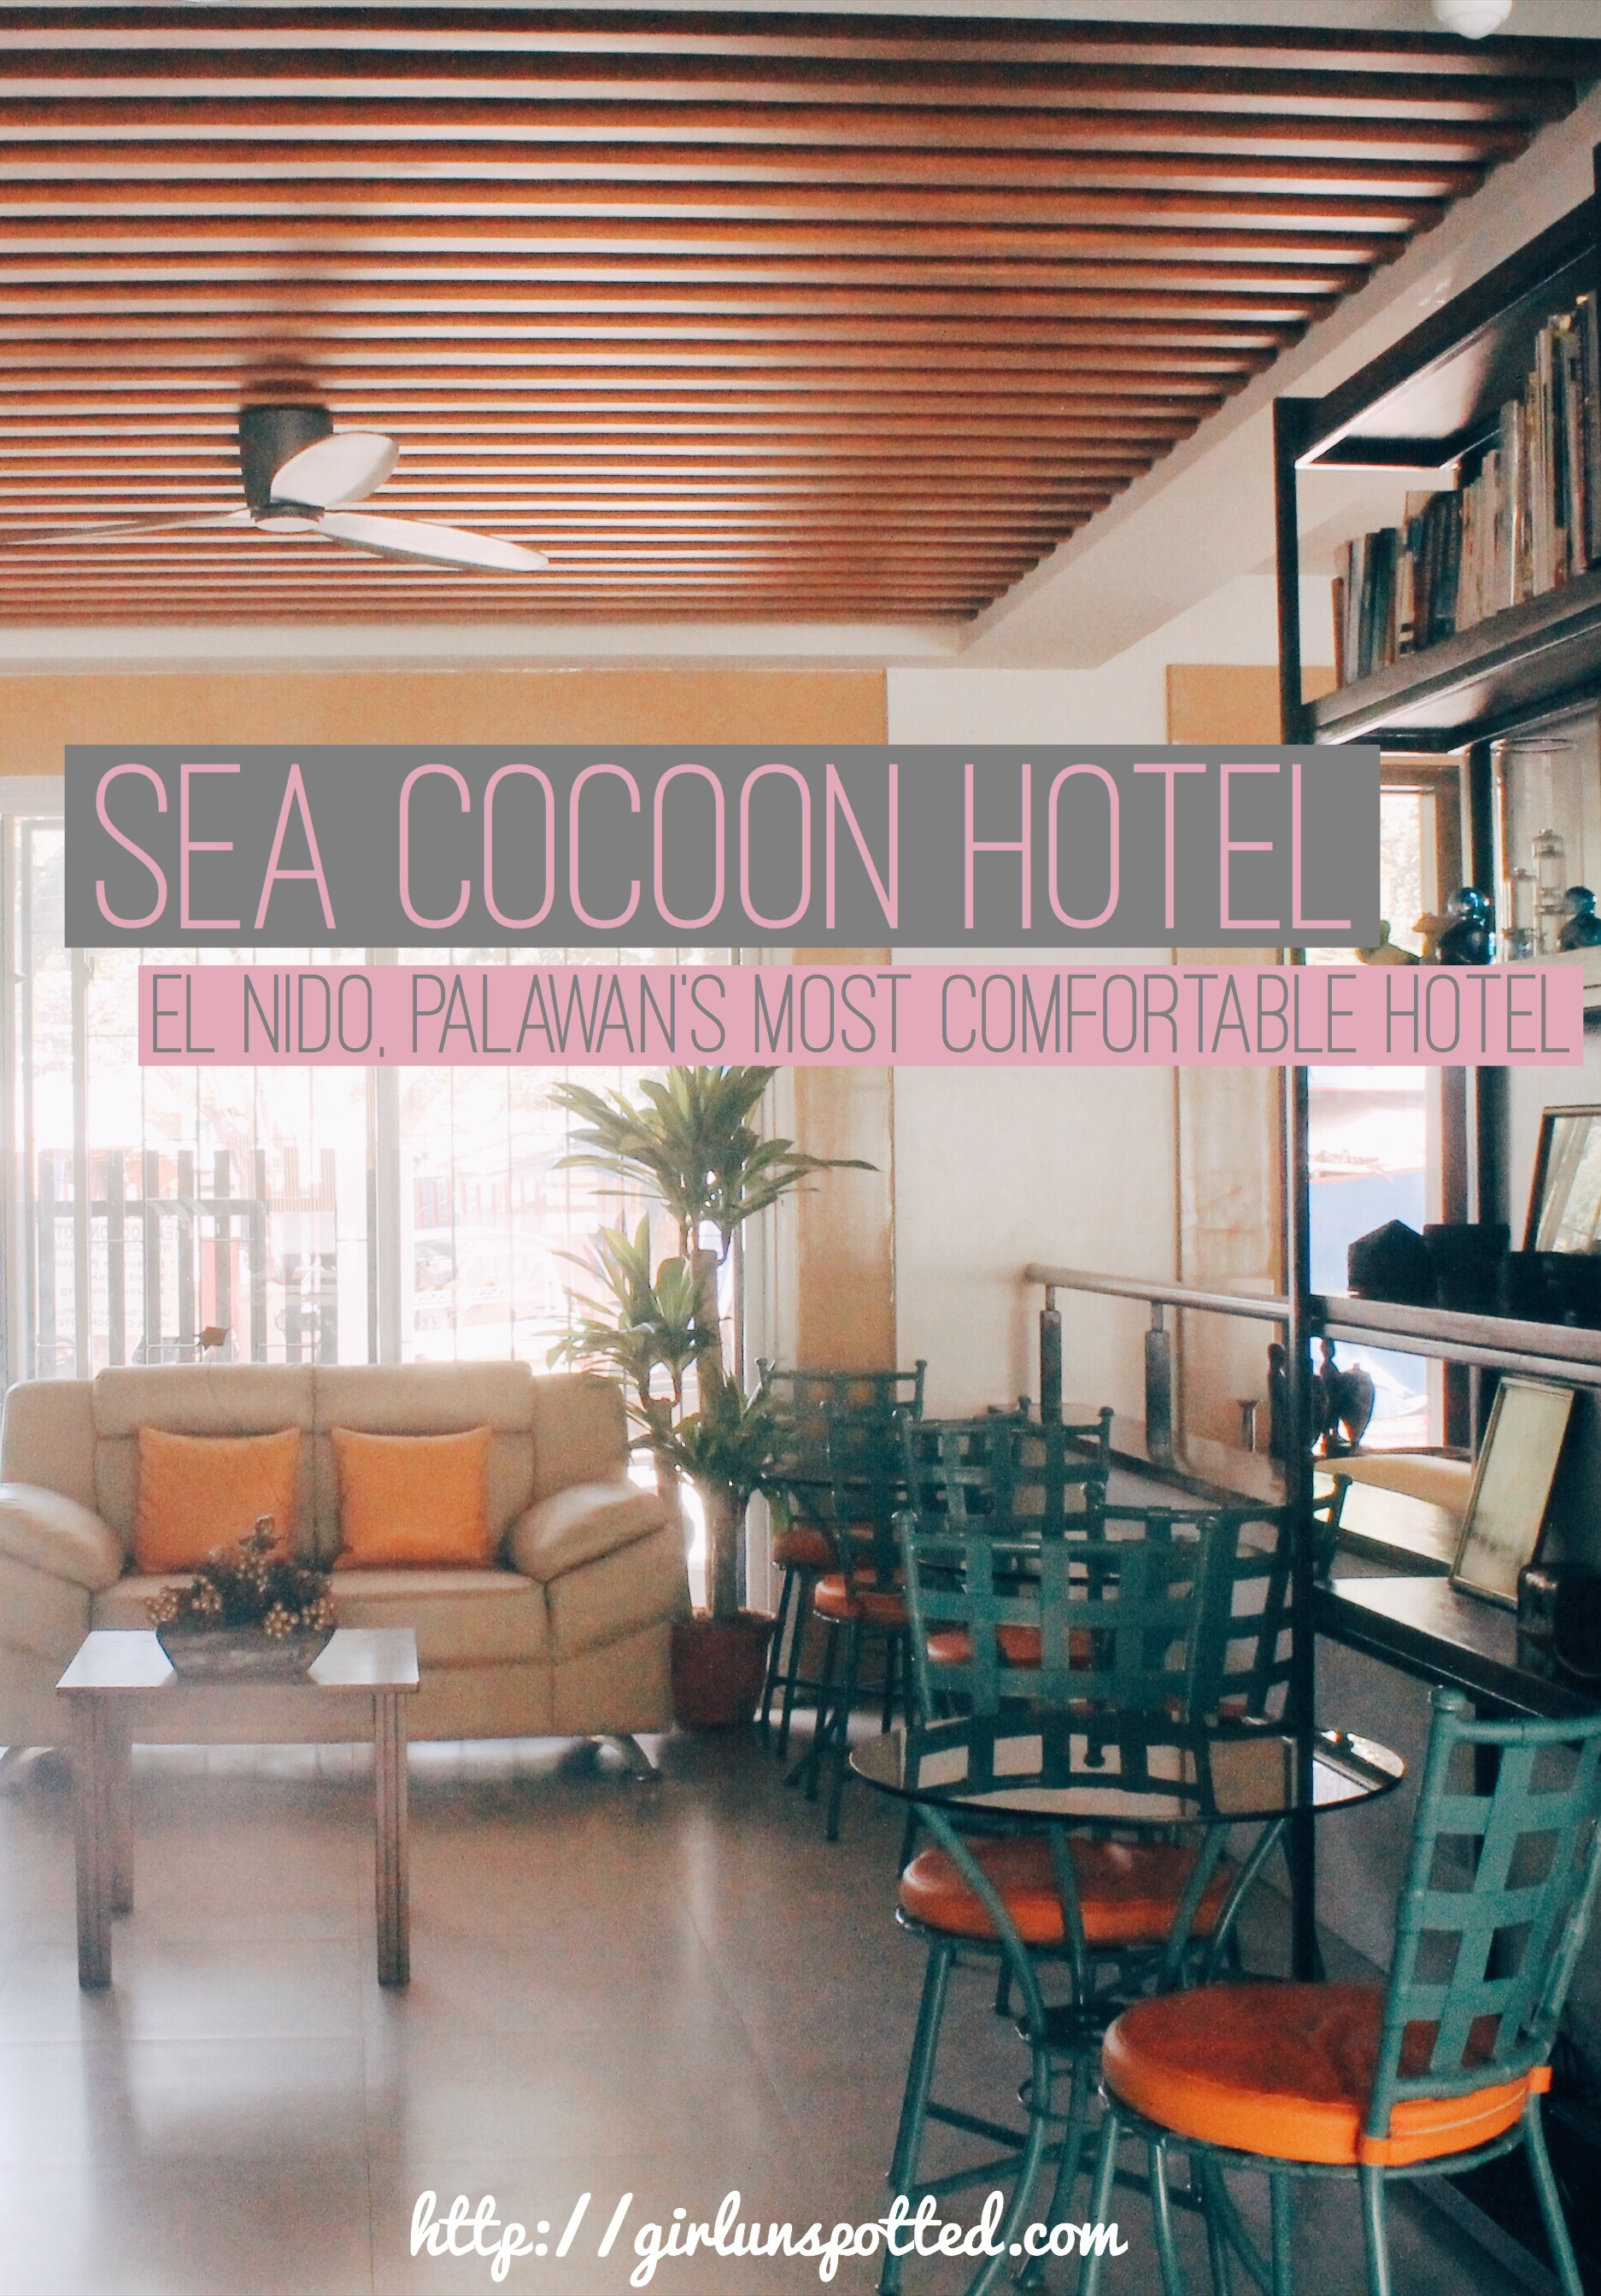 Where To Stay In El Nido Sea Cocoon Hotel